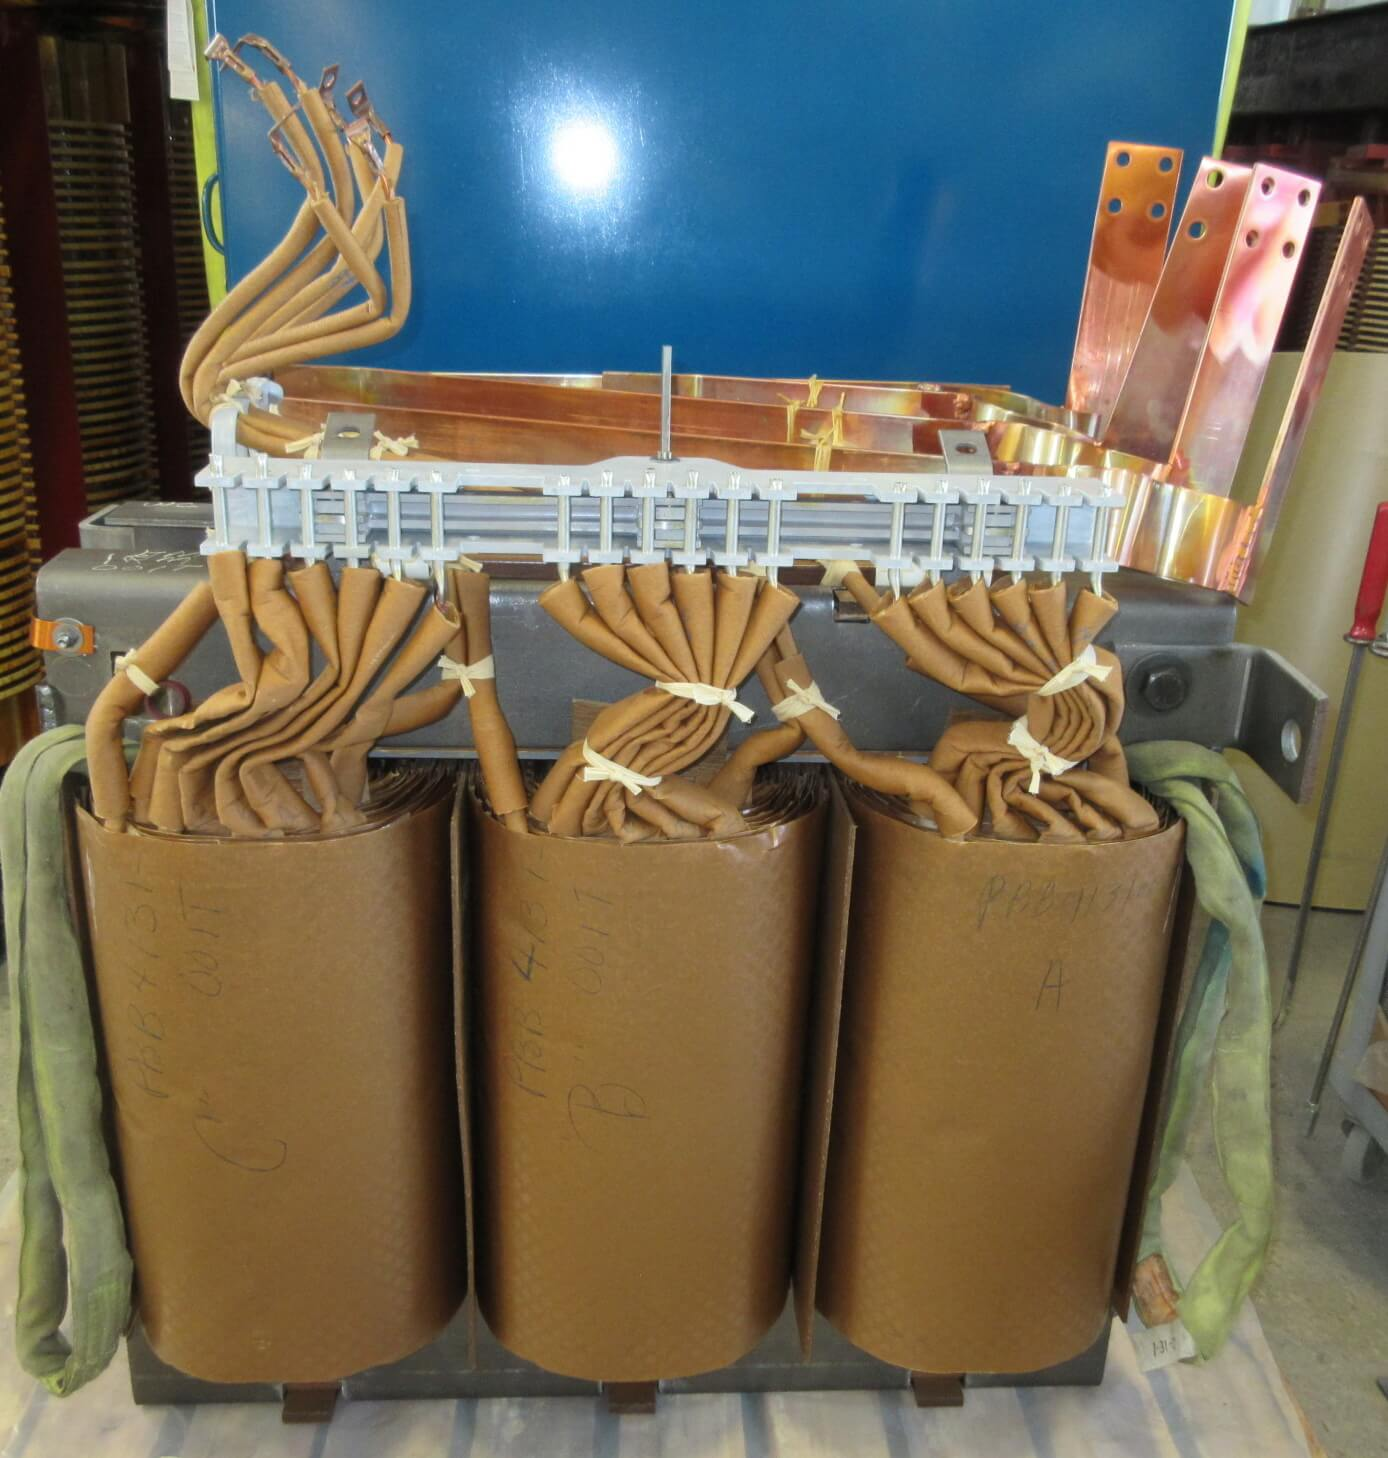 Dry type transformer unit ready to be shipped.